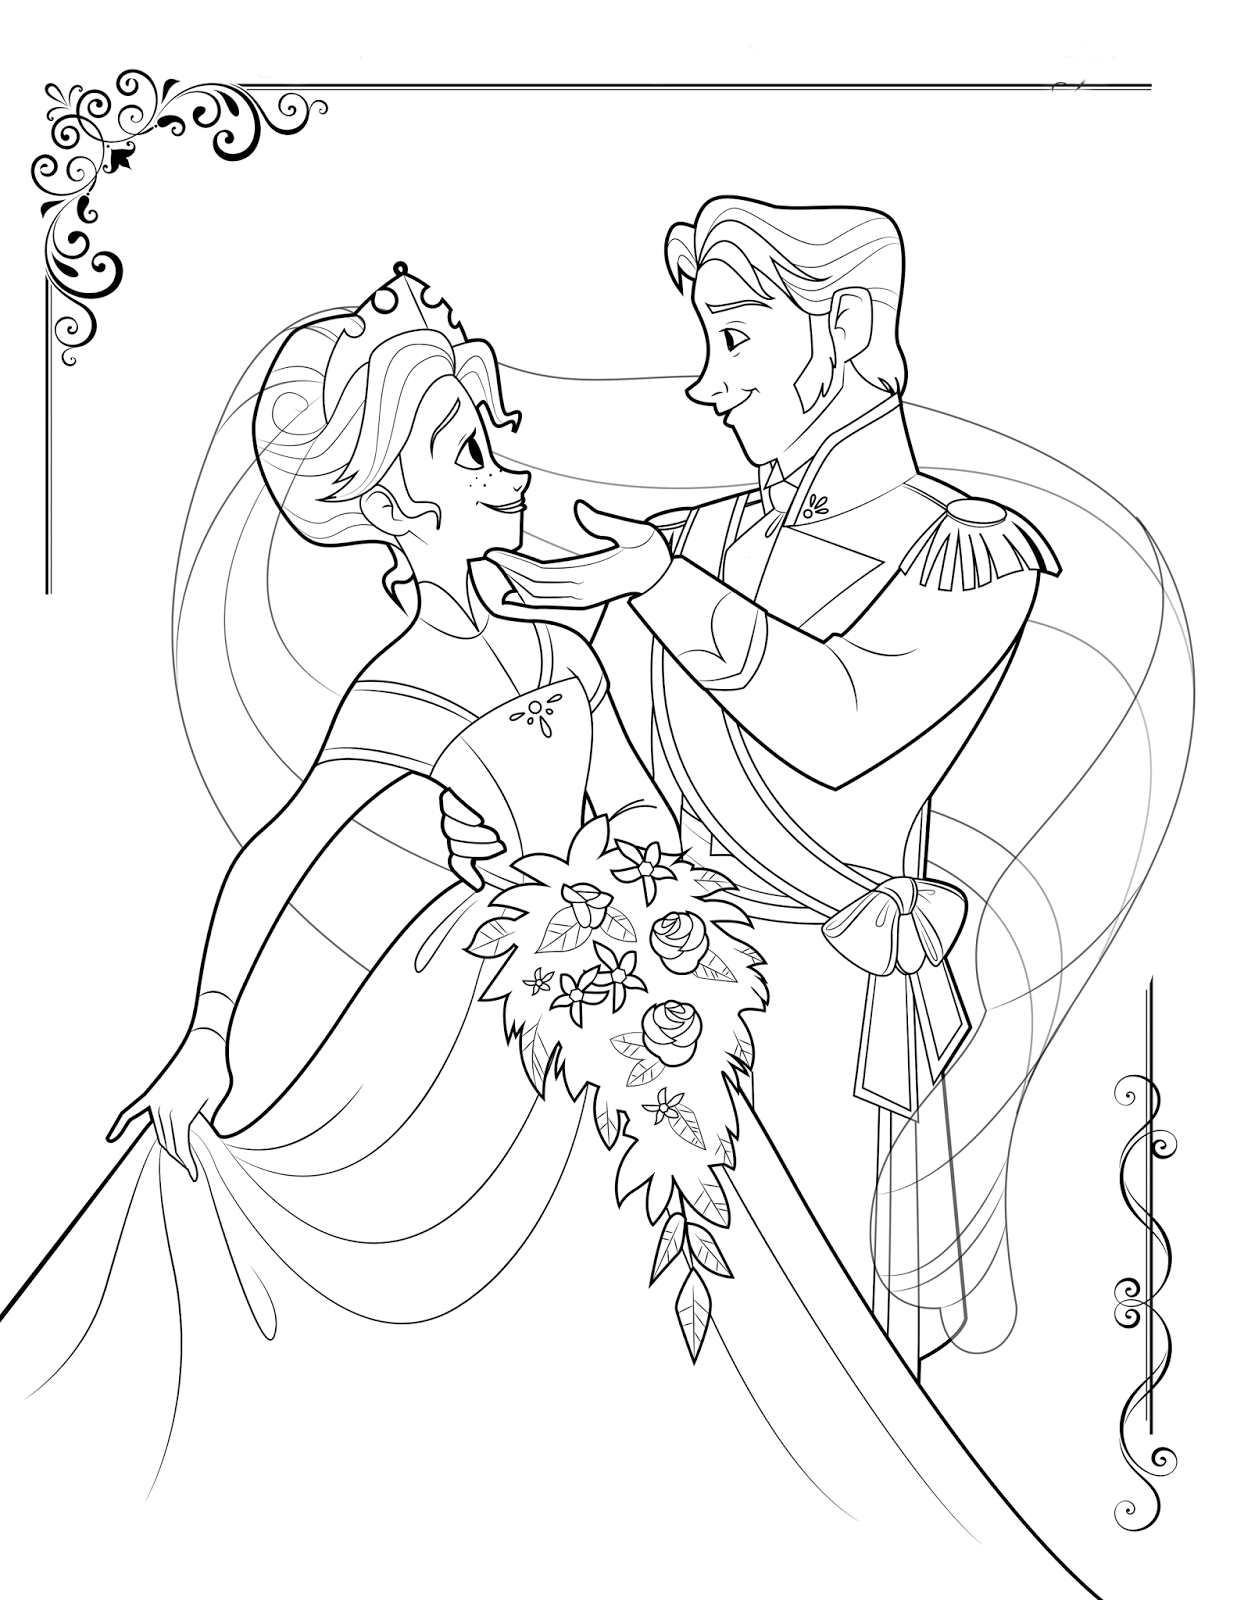 Free Printable Frozen Coloring Pages For Kids Best Coloring Pages For Kids Frozen Coloring Pages Elsa Coloring Pages Frozen Coloring